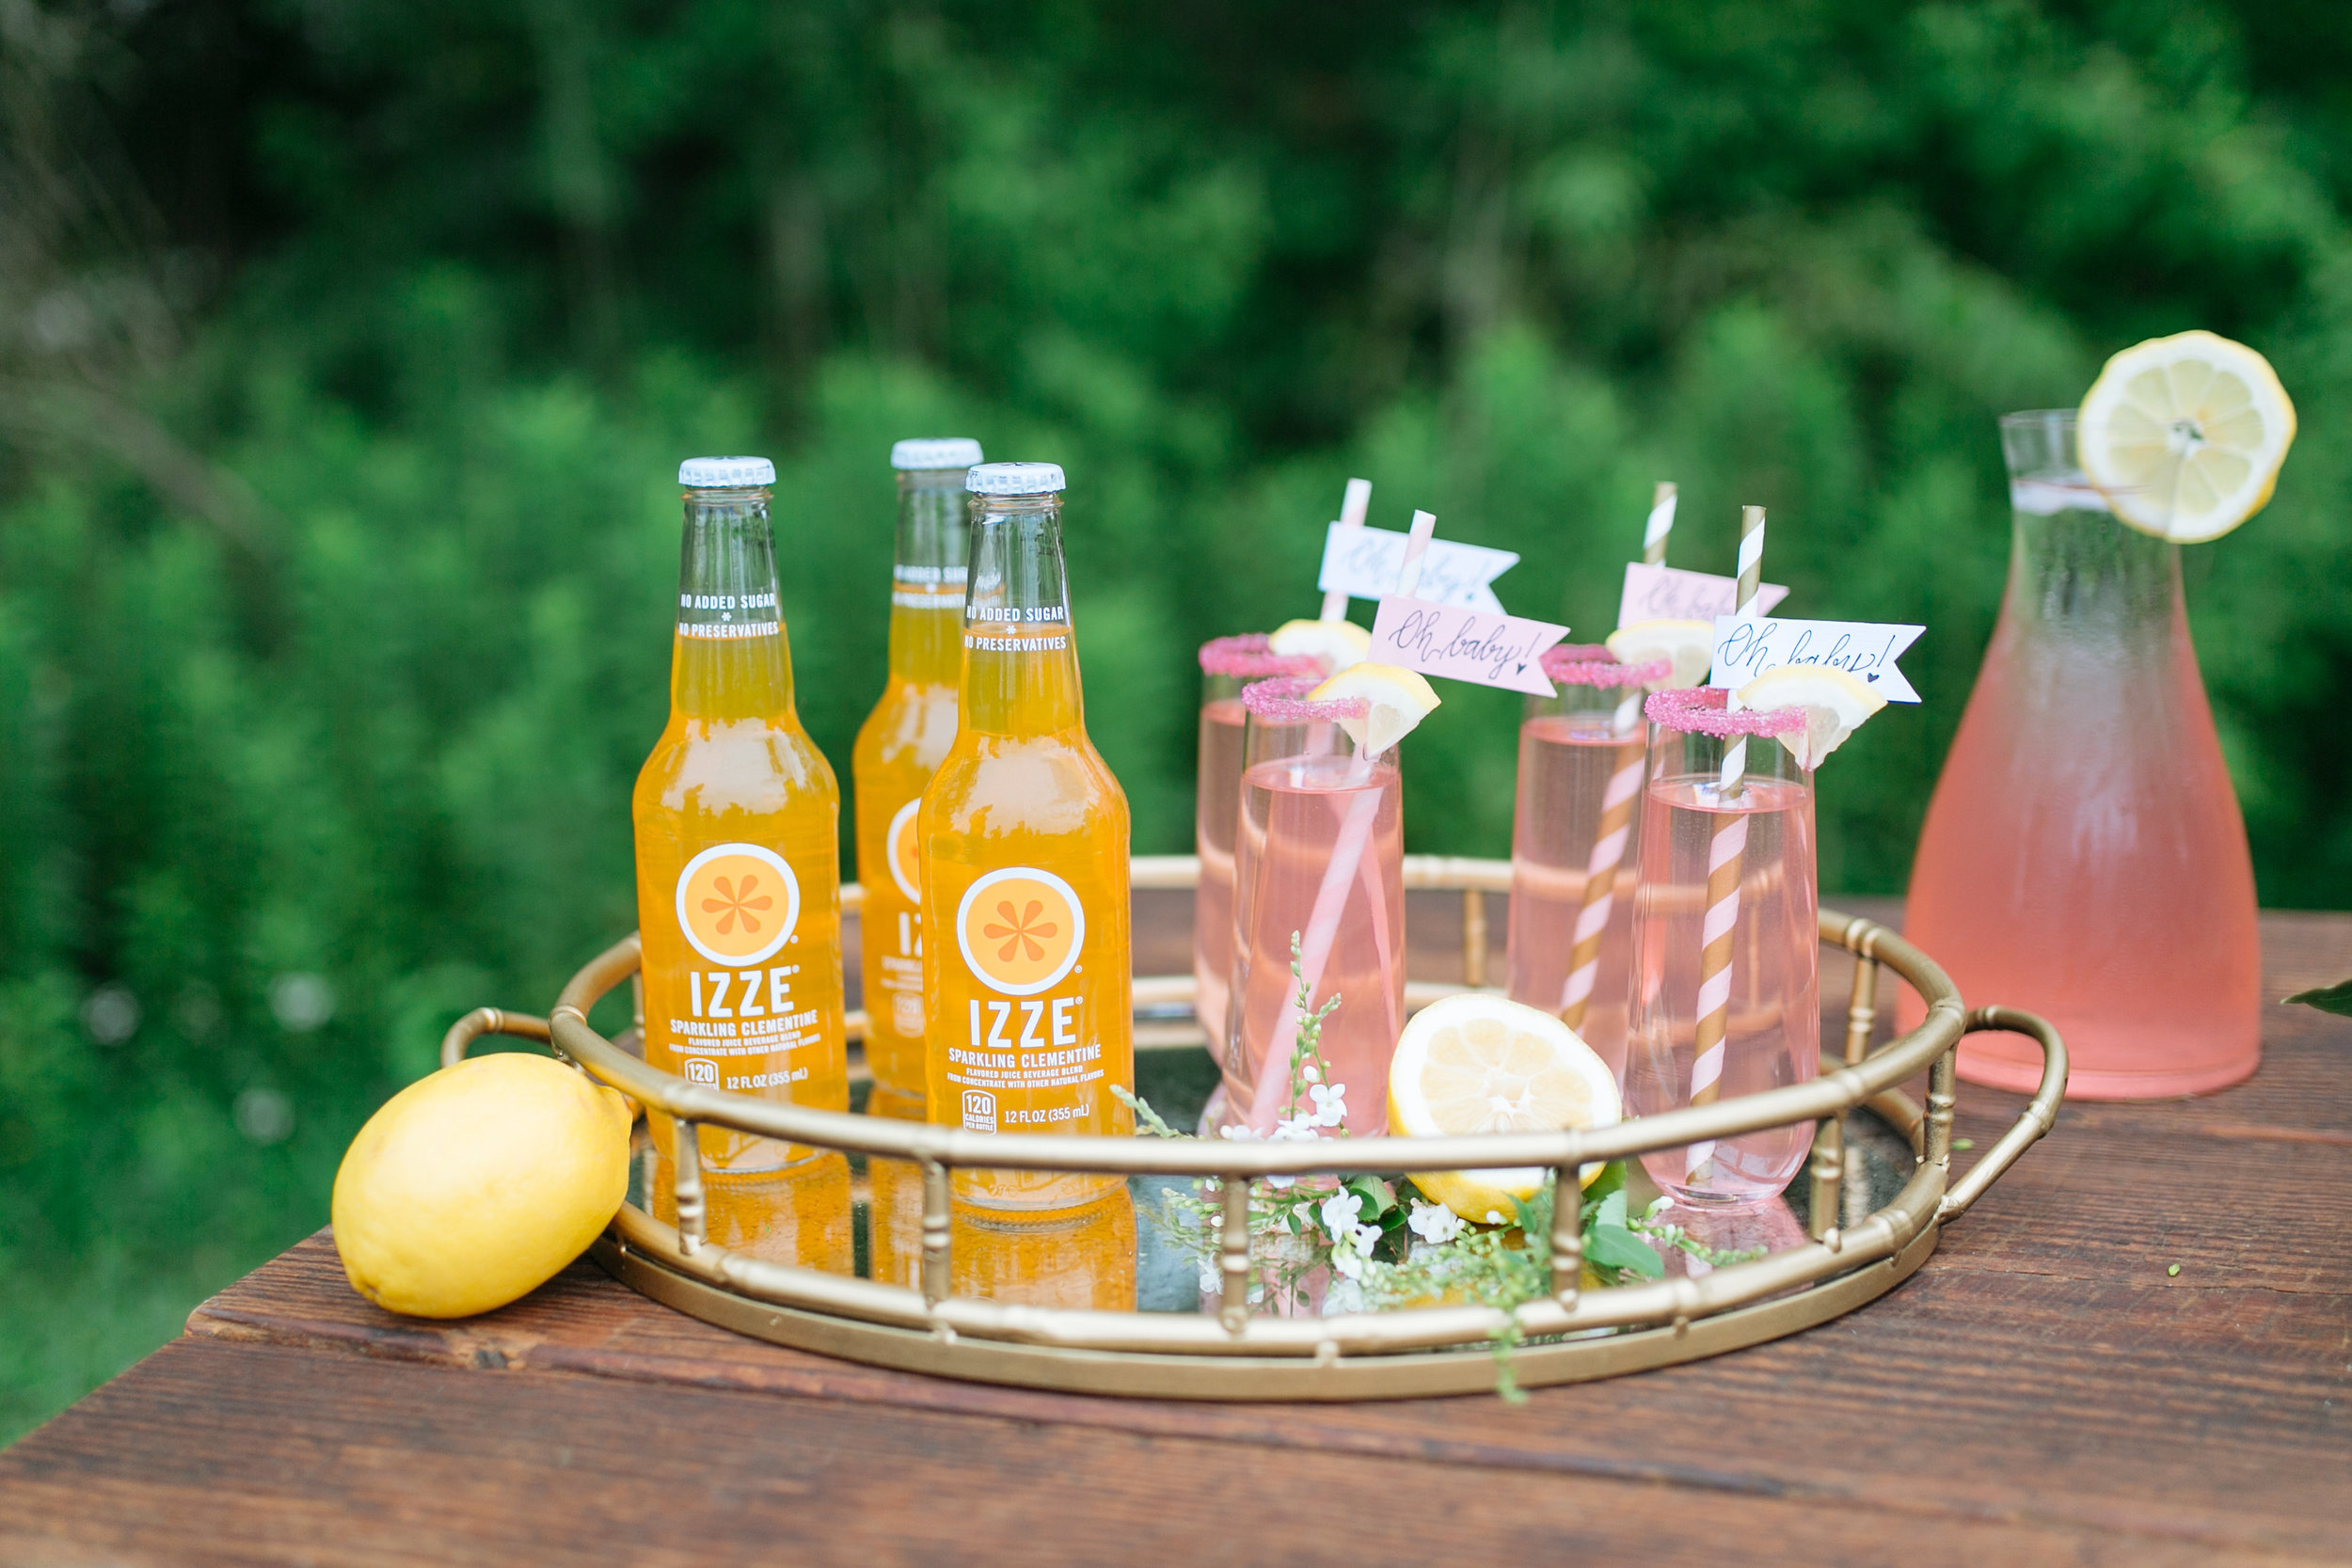 Houston Outdoor Baby Shower | Houston Event Planners | Baby Shower Ideas | Drink Ideas for a Baby Shower